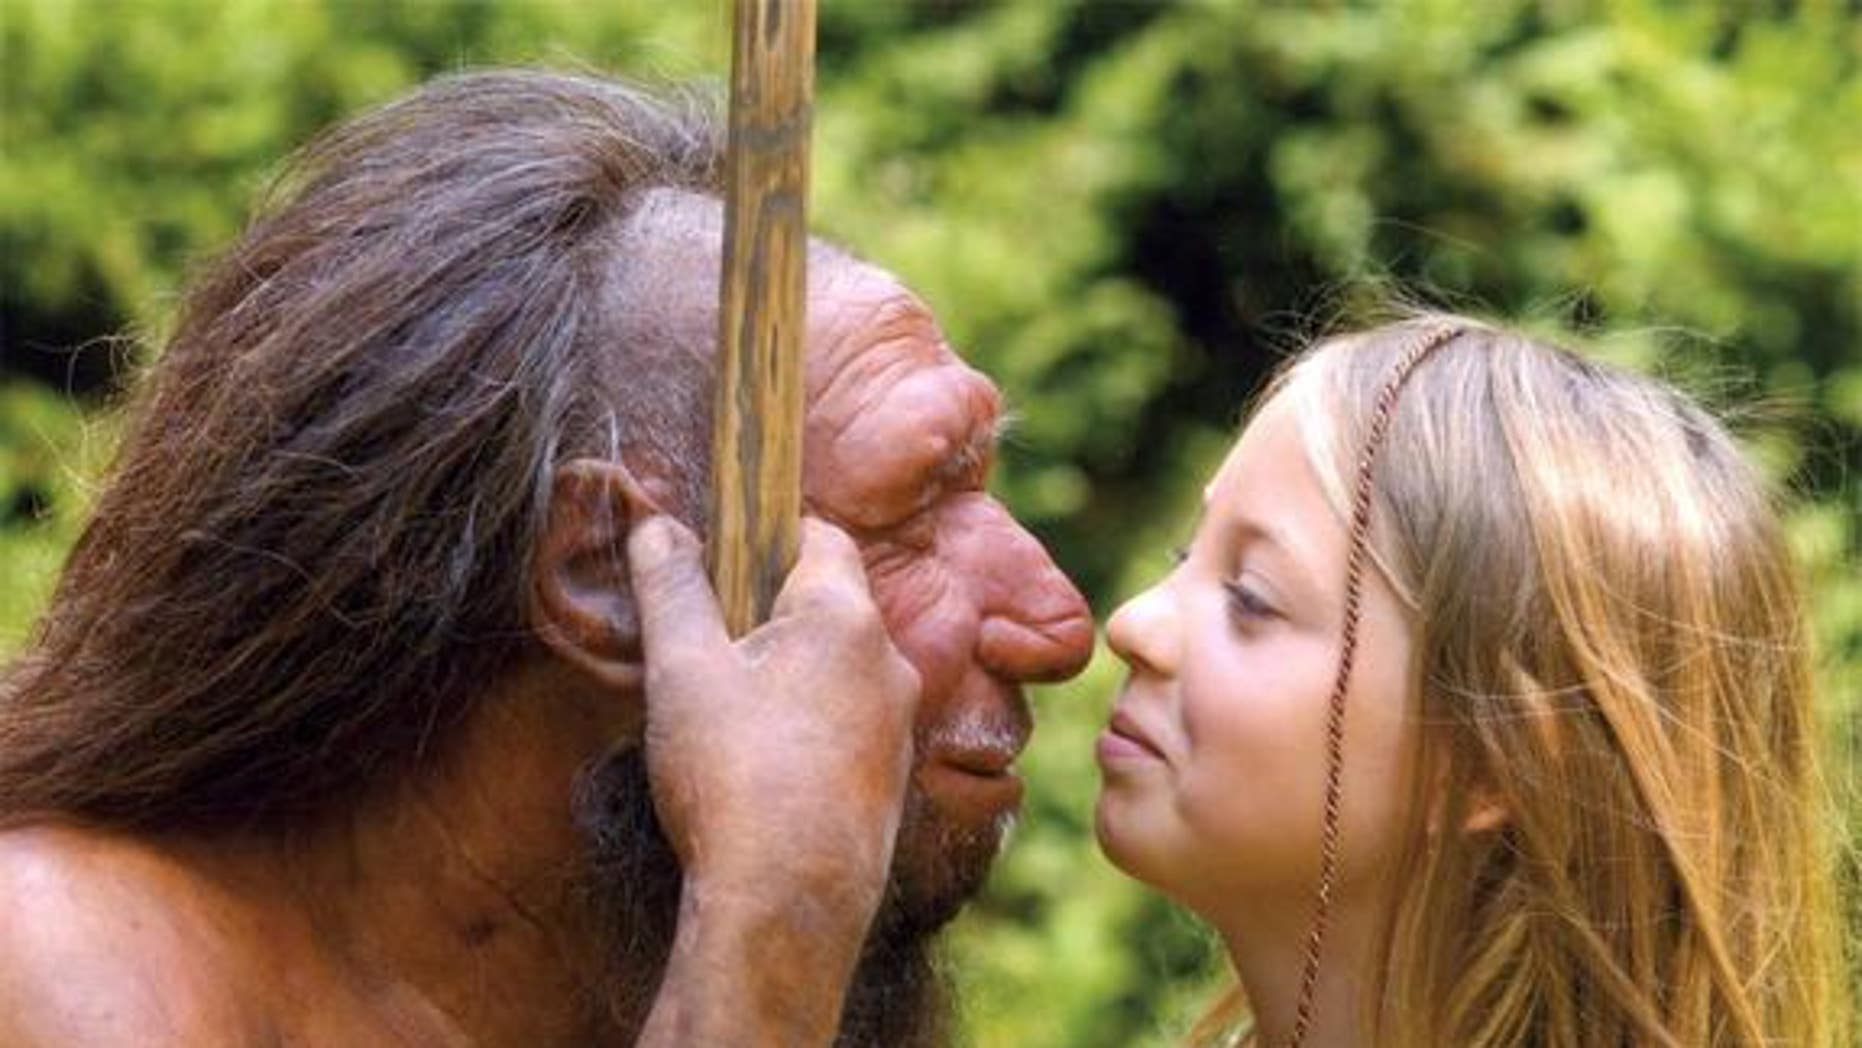 """Neanderthals had a characteristic """"bun head"""" shaped skull which allowed for expanded visual processing in the back of the brain. That left them less head space for the frontal lobe, which governs social cognition."""